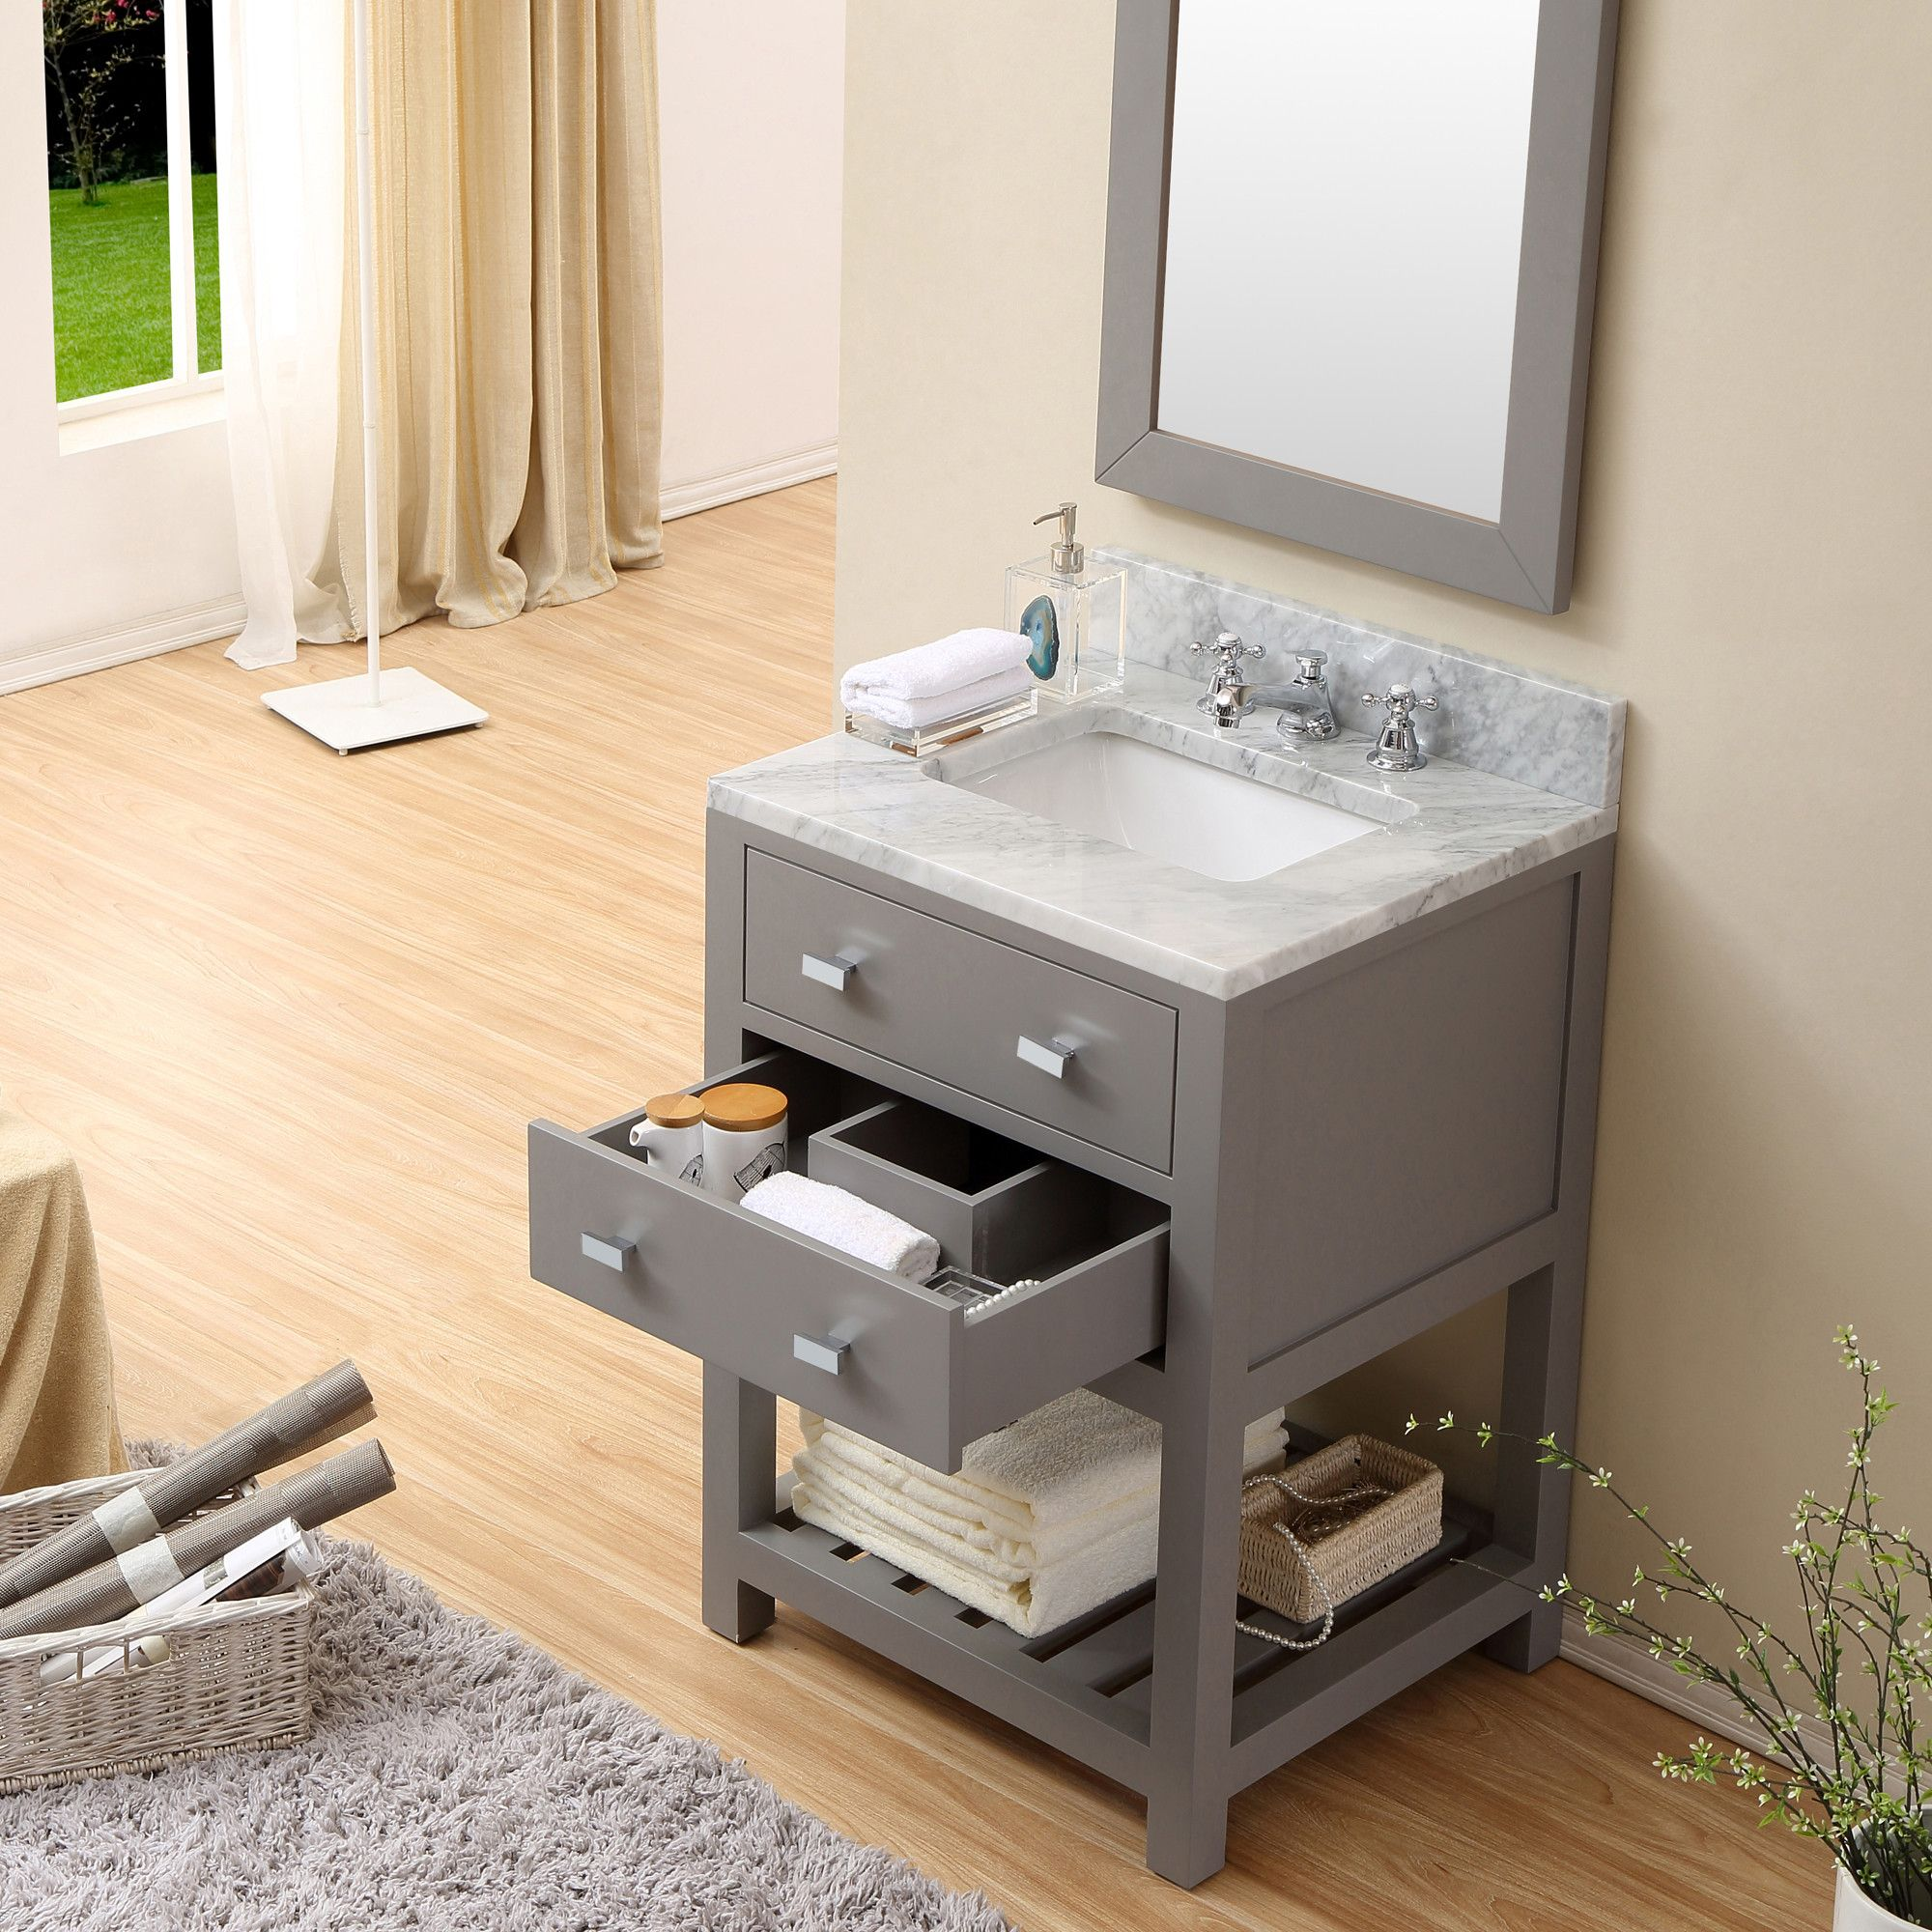 Cadale 24 Inch Gay Finish Single Sink Bathroom Vanity Tiny